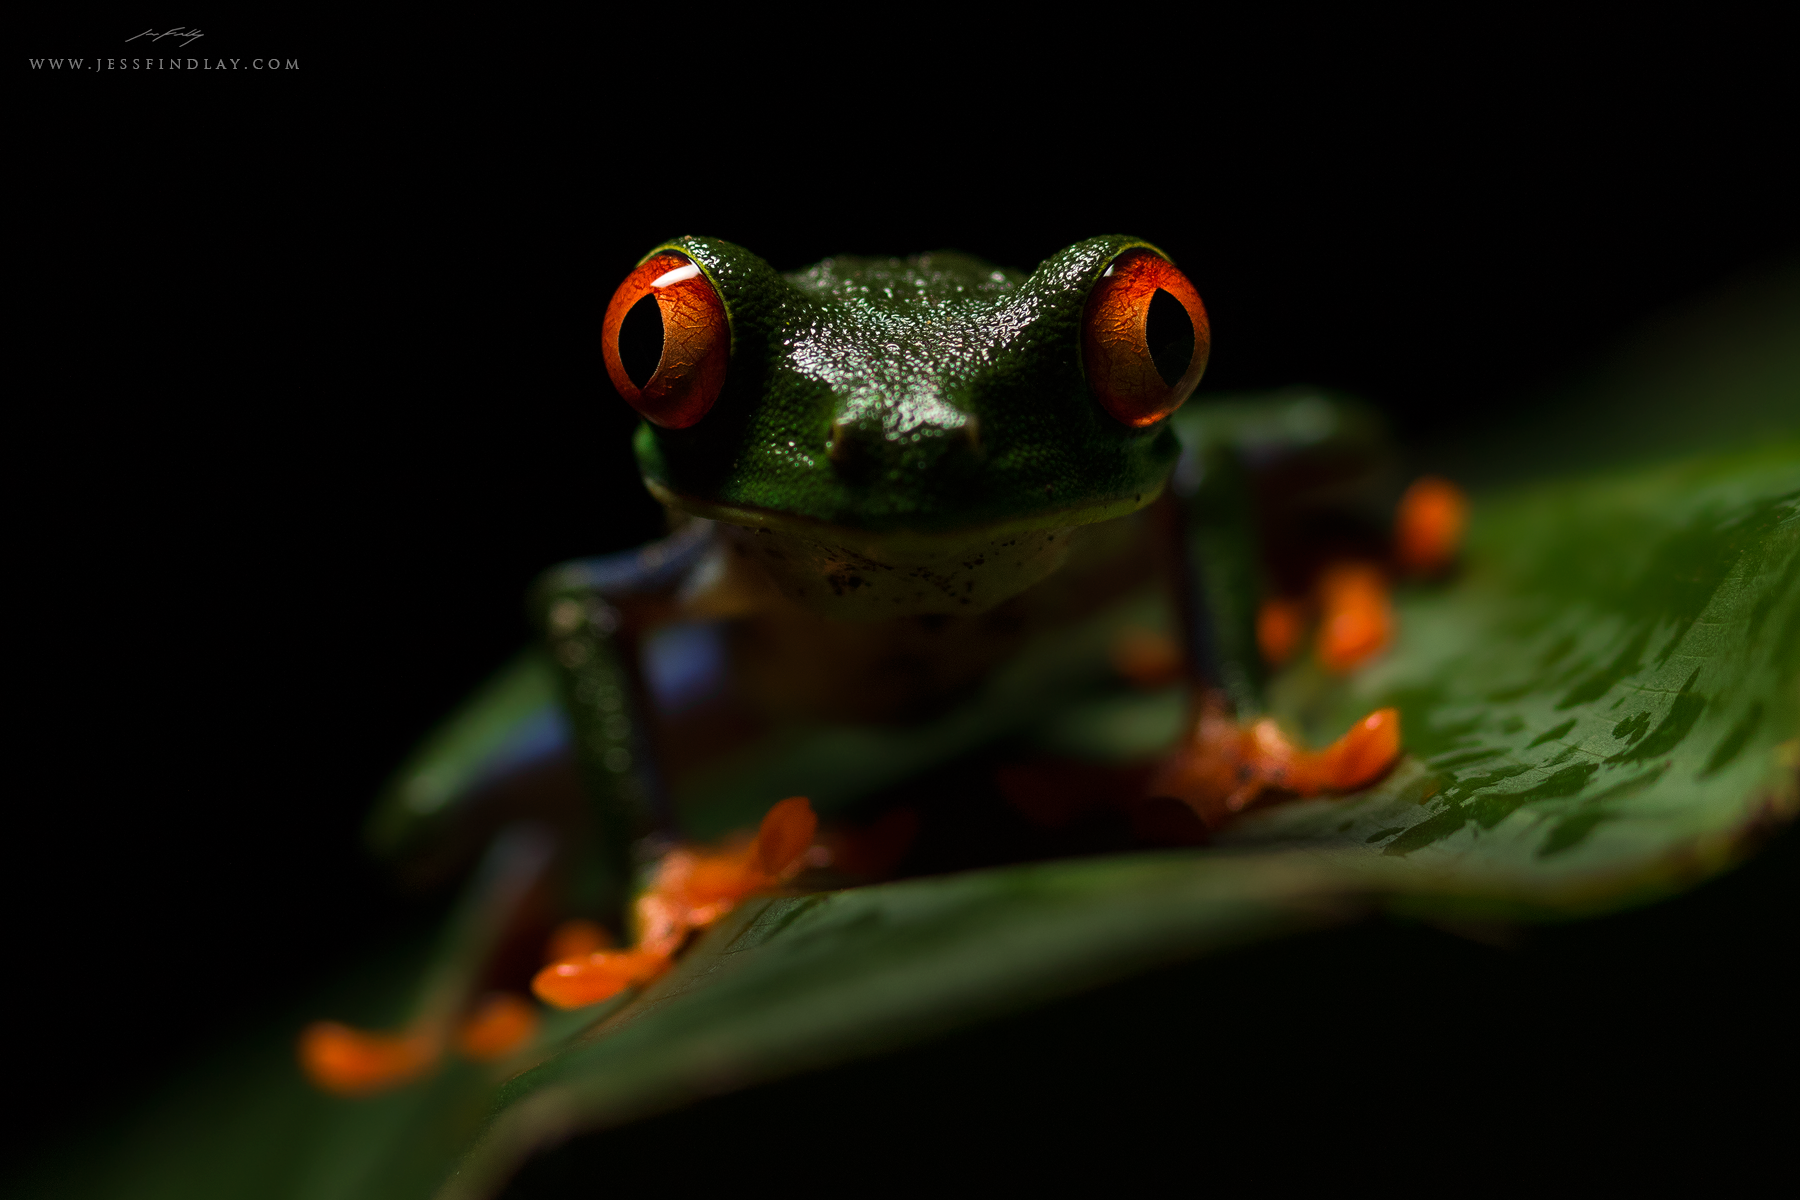 A Red-eyed Tree Frog's massive eyes and feet stand out in the dark of night in Costa Rica's Caribbean lowland rainforest.